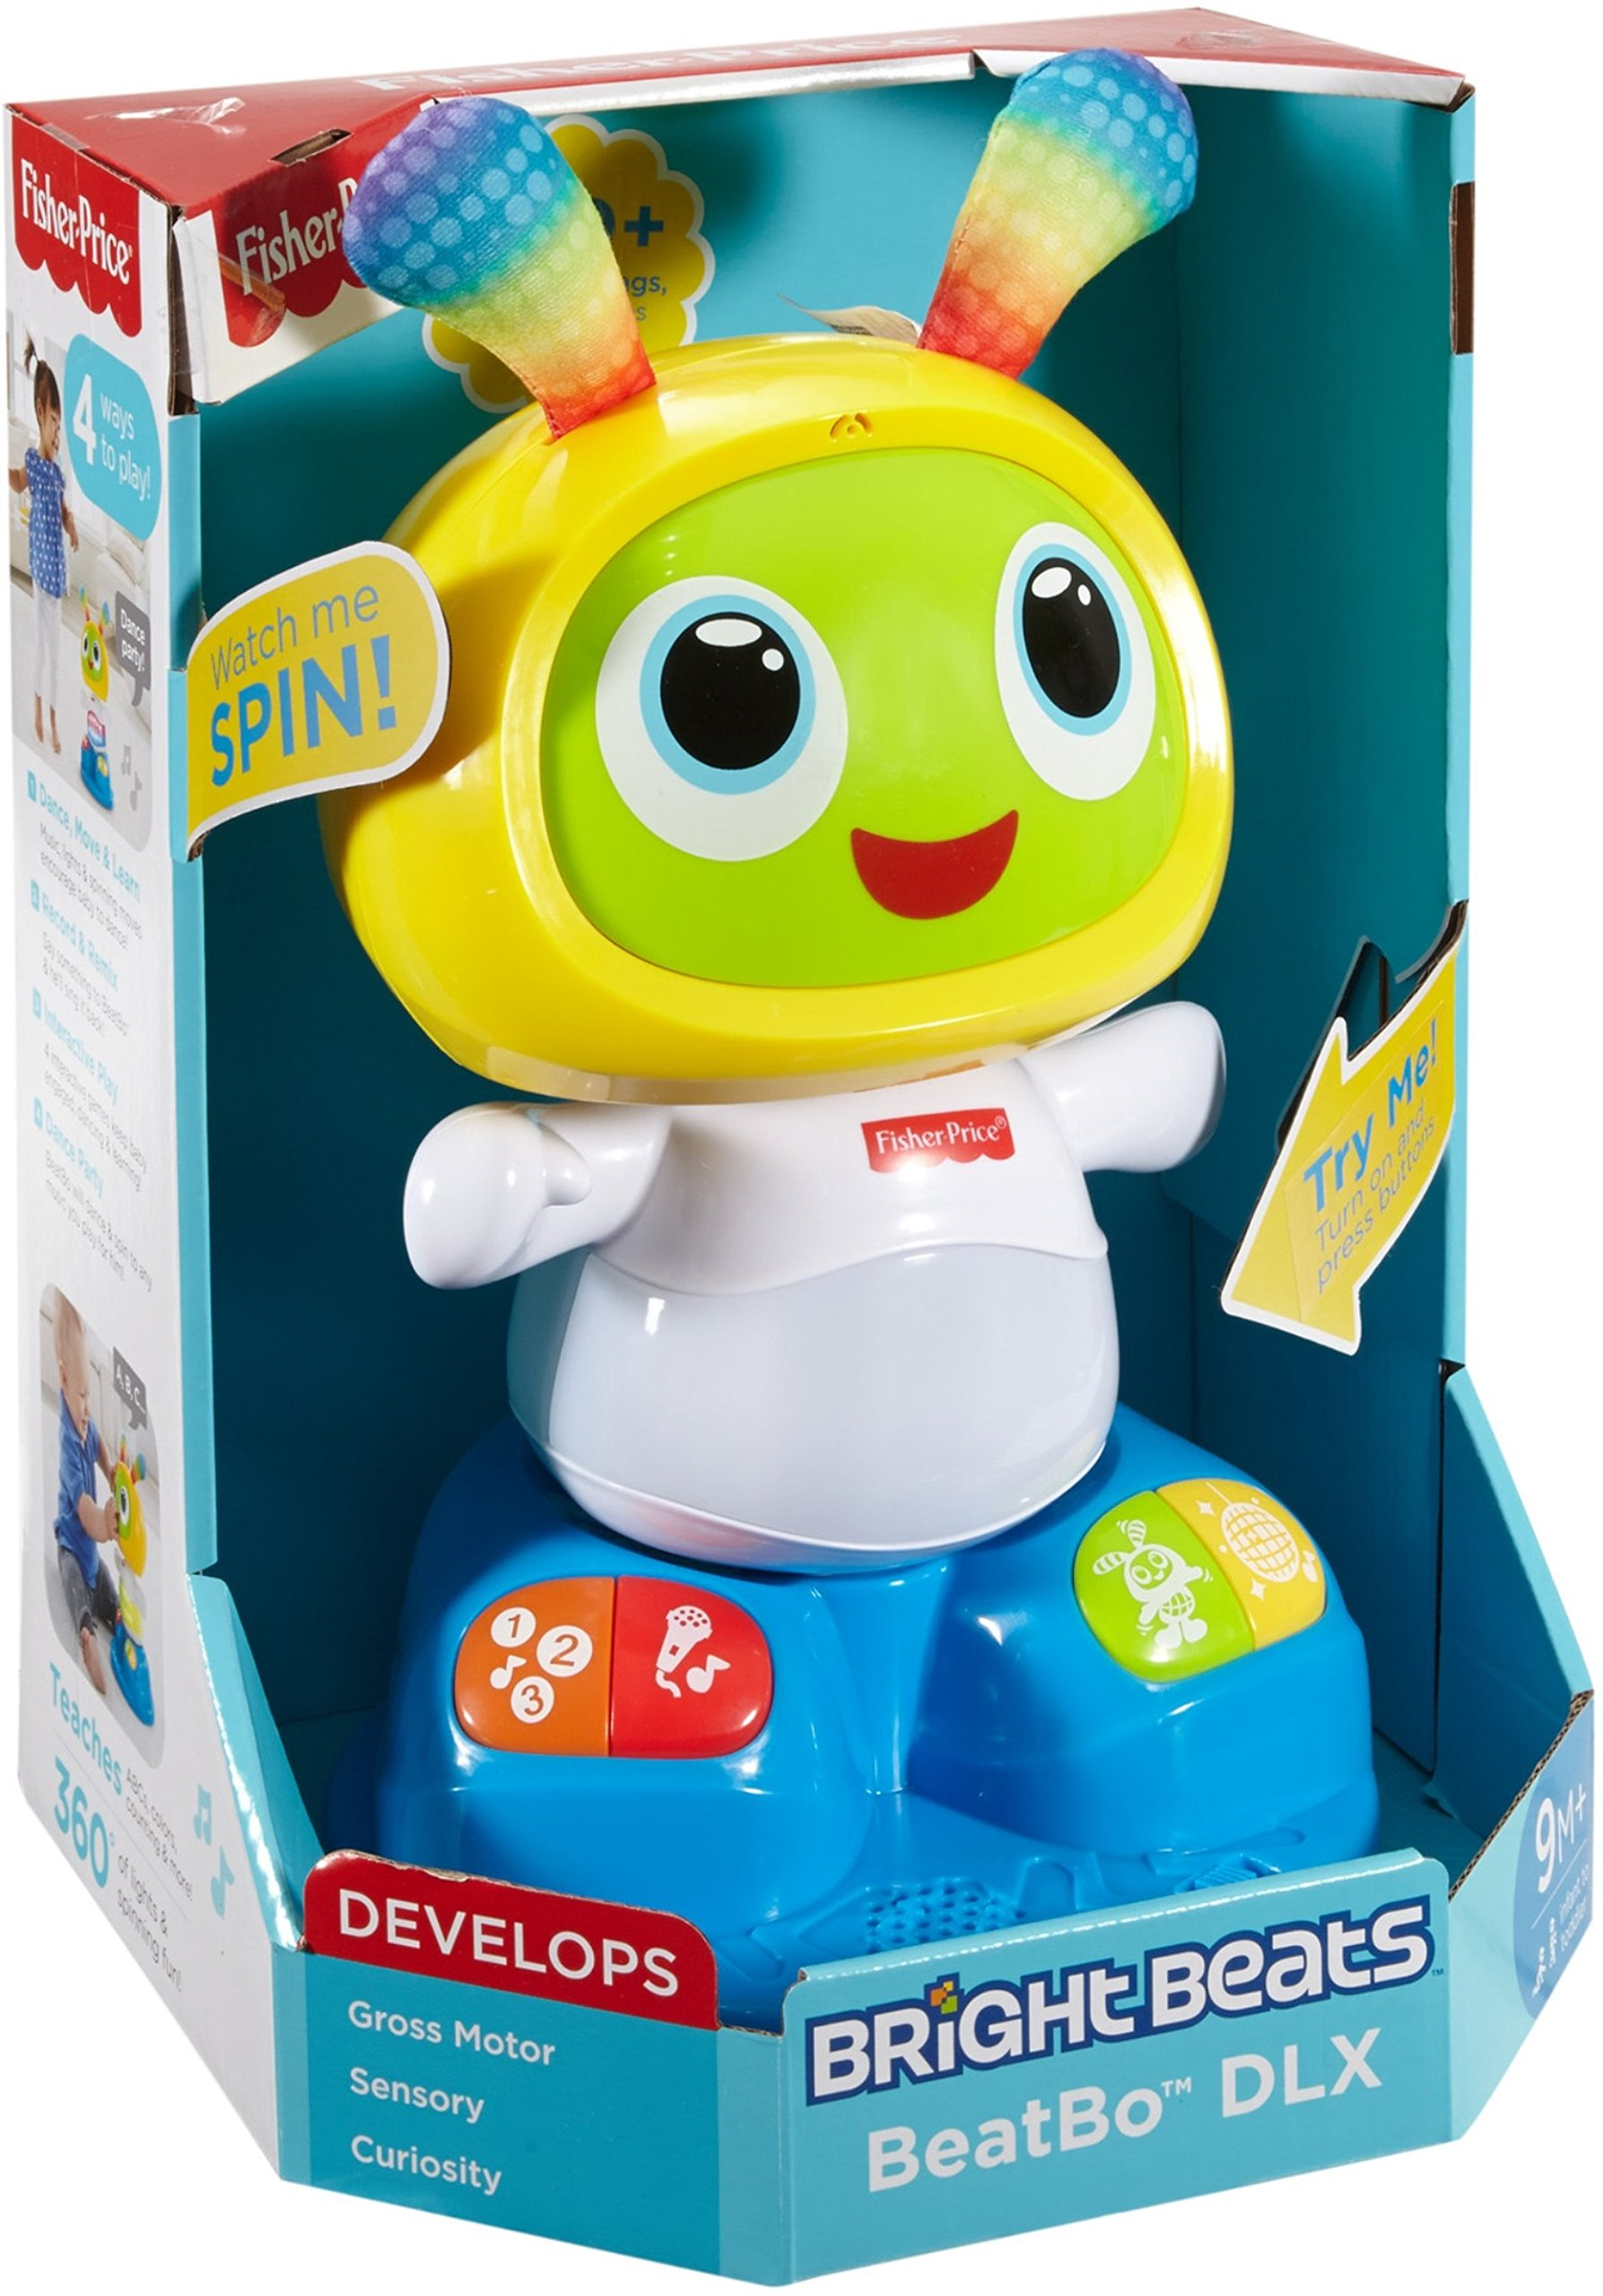 Fisher-Price Bright Beats BeatBo DLX by Fisher-Price